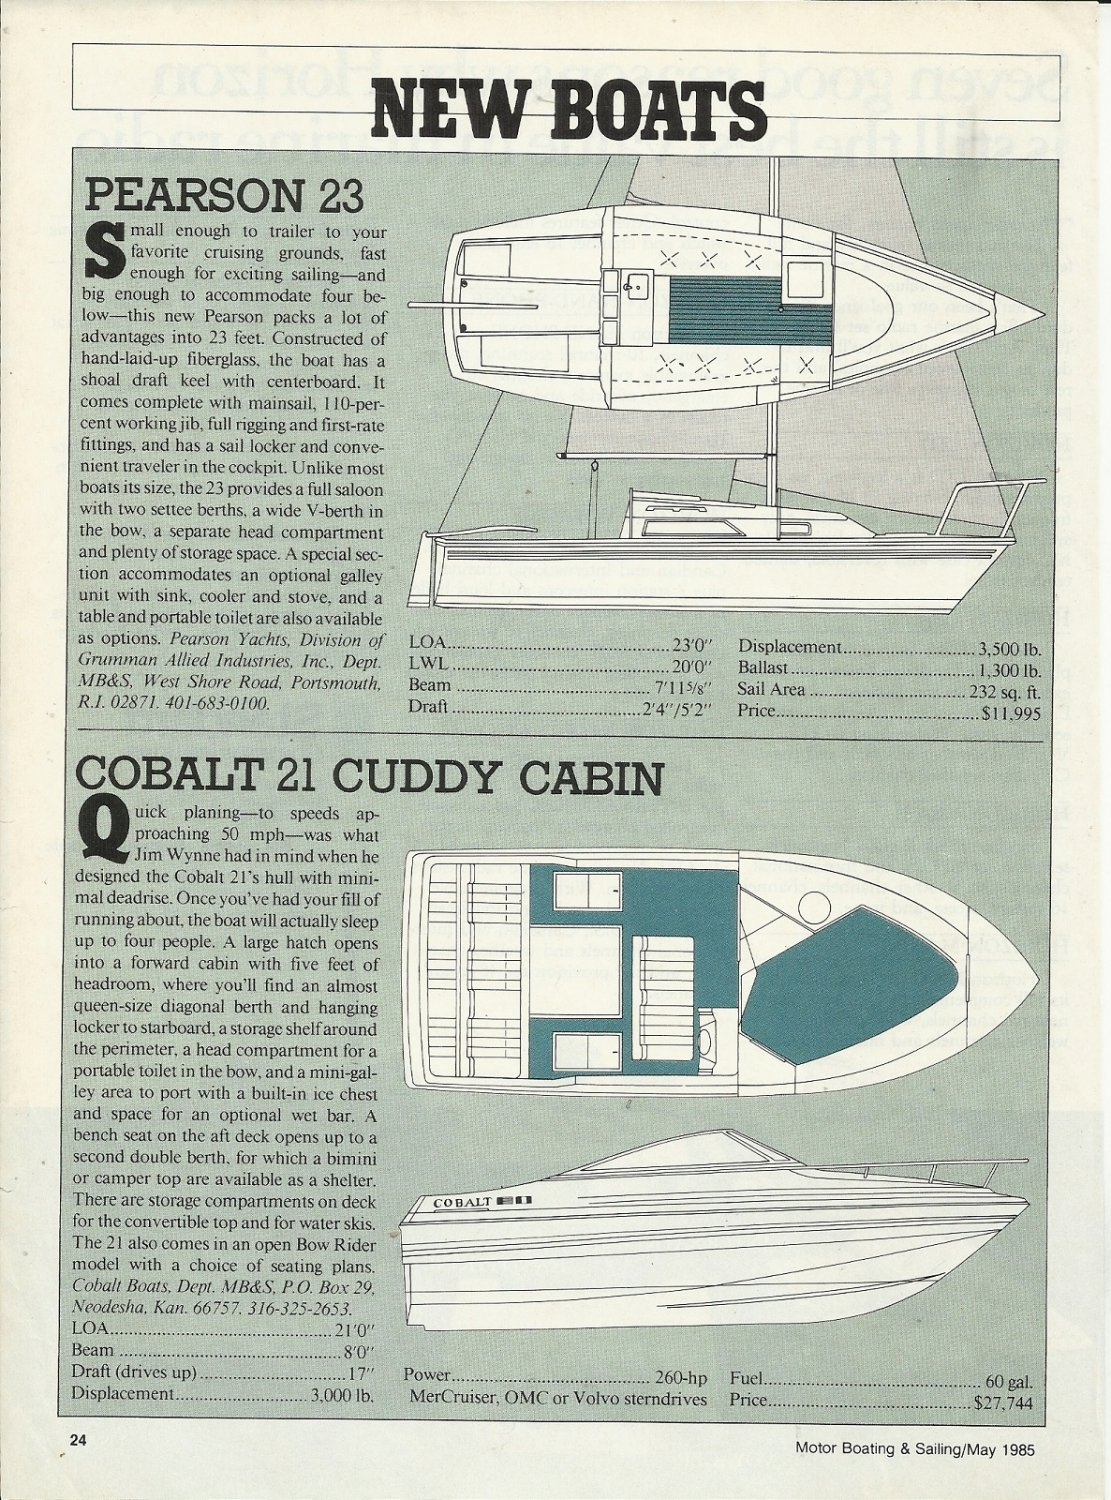 1985 Cobalt 21 & Pearson 23 New Boats Reviews & Specs